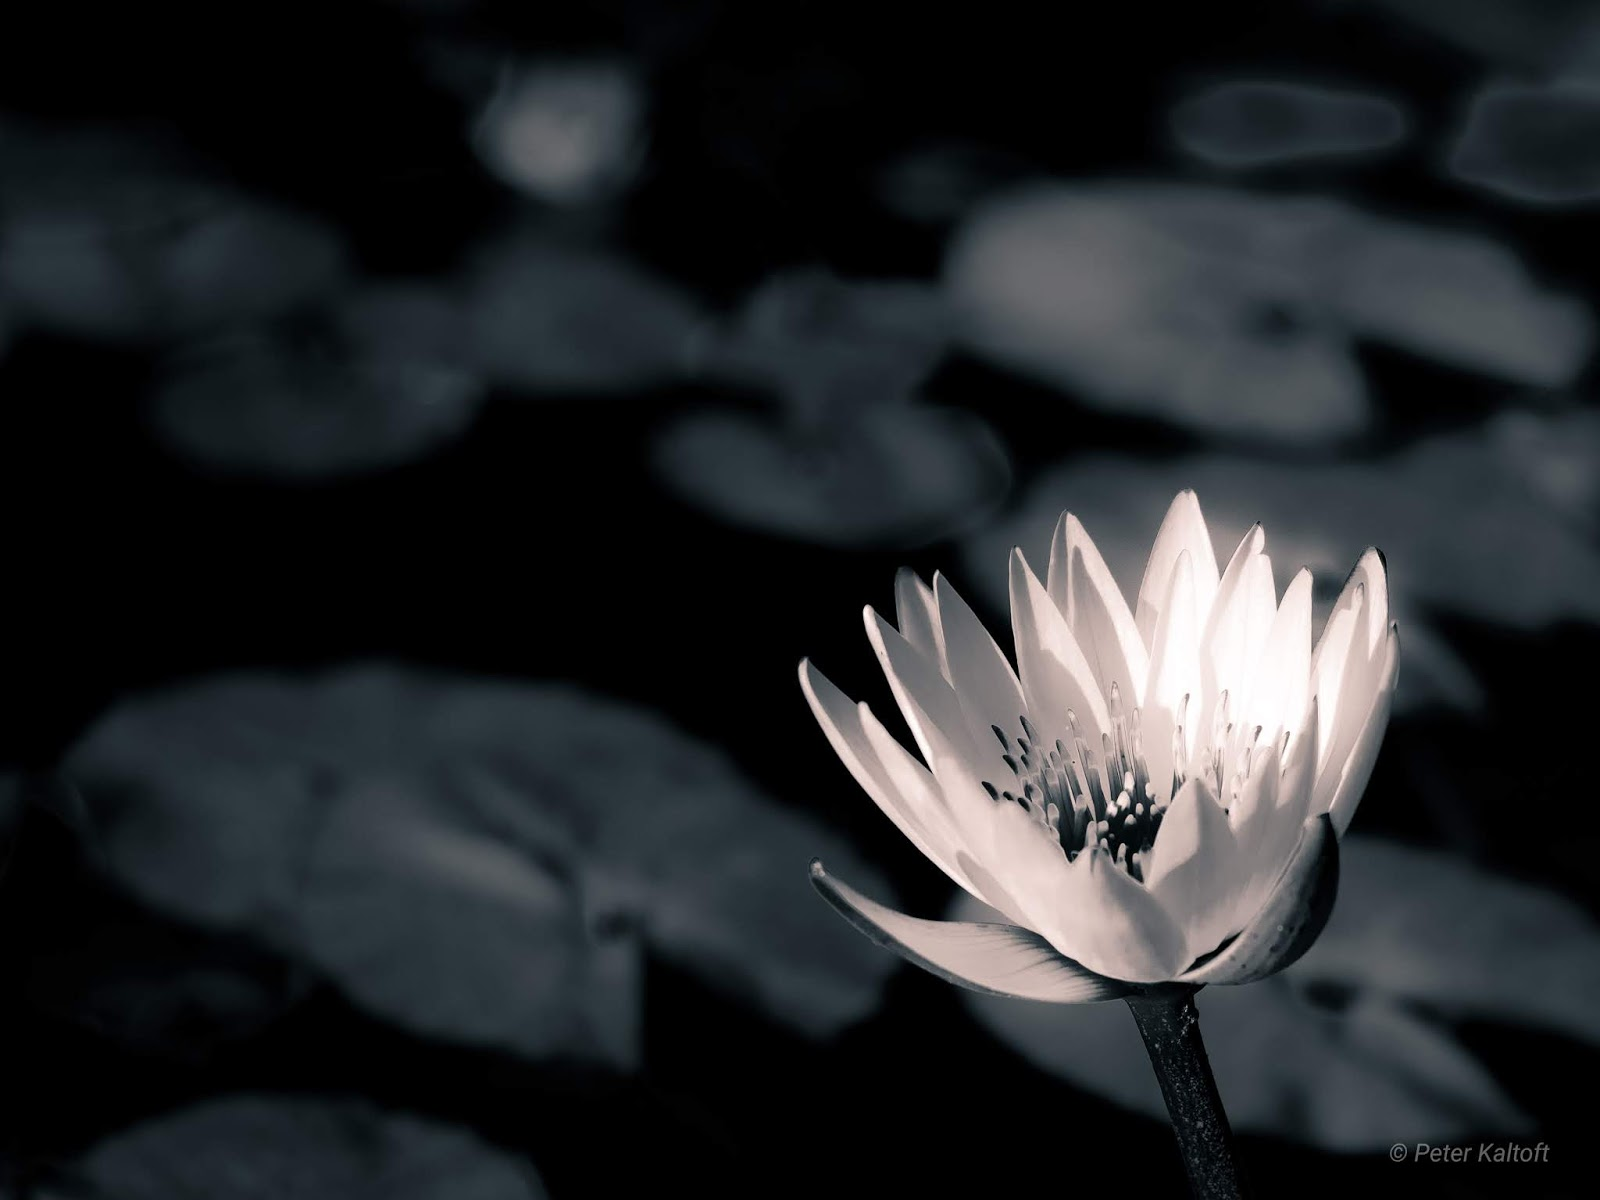 A flower highlighted on a dark background.